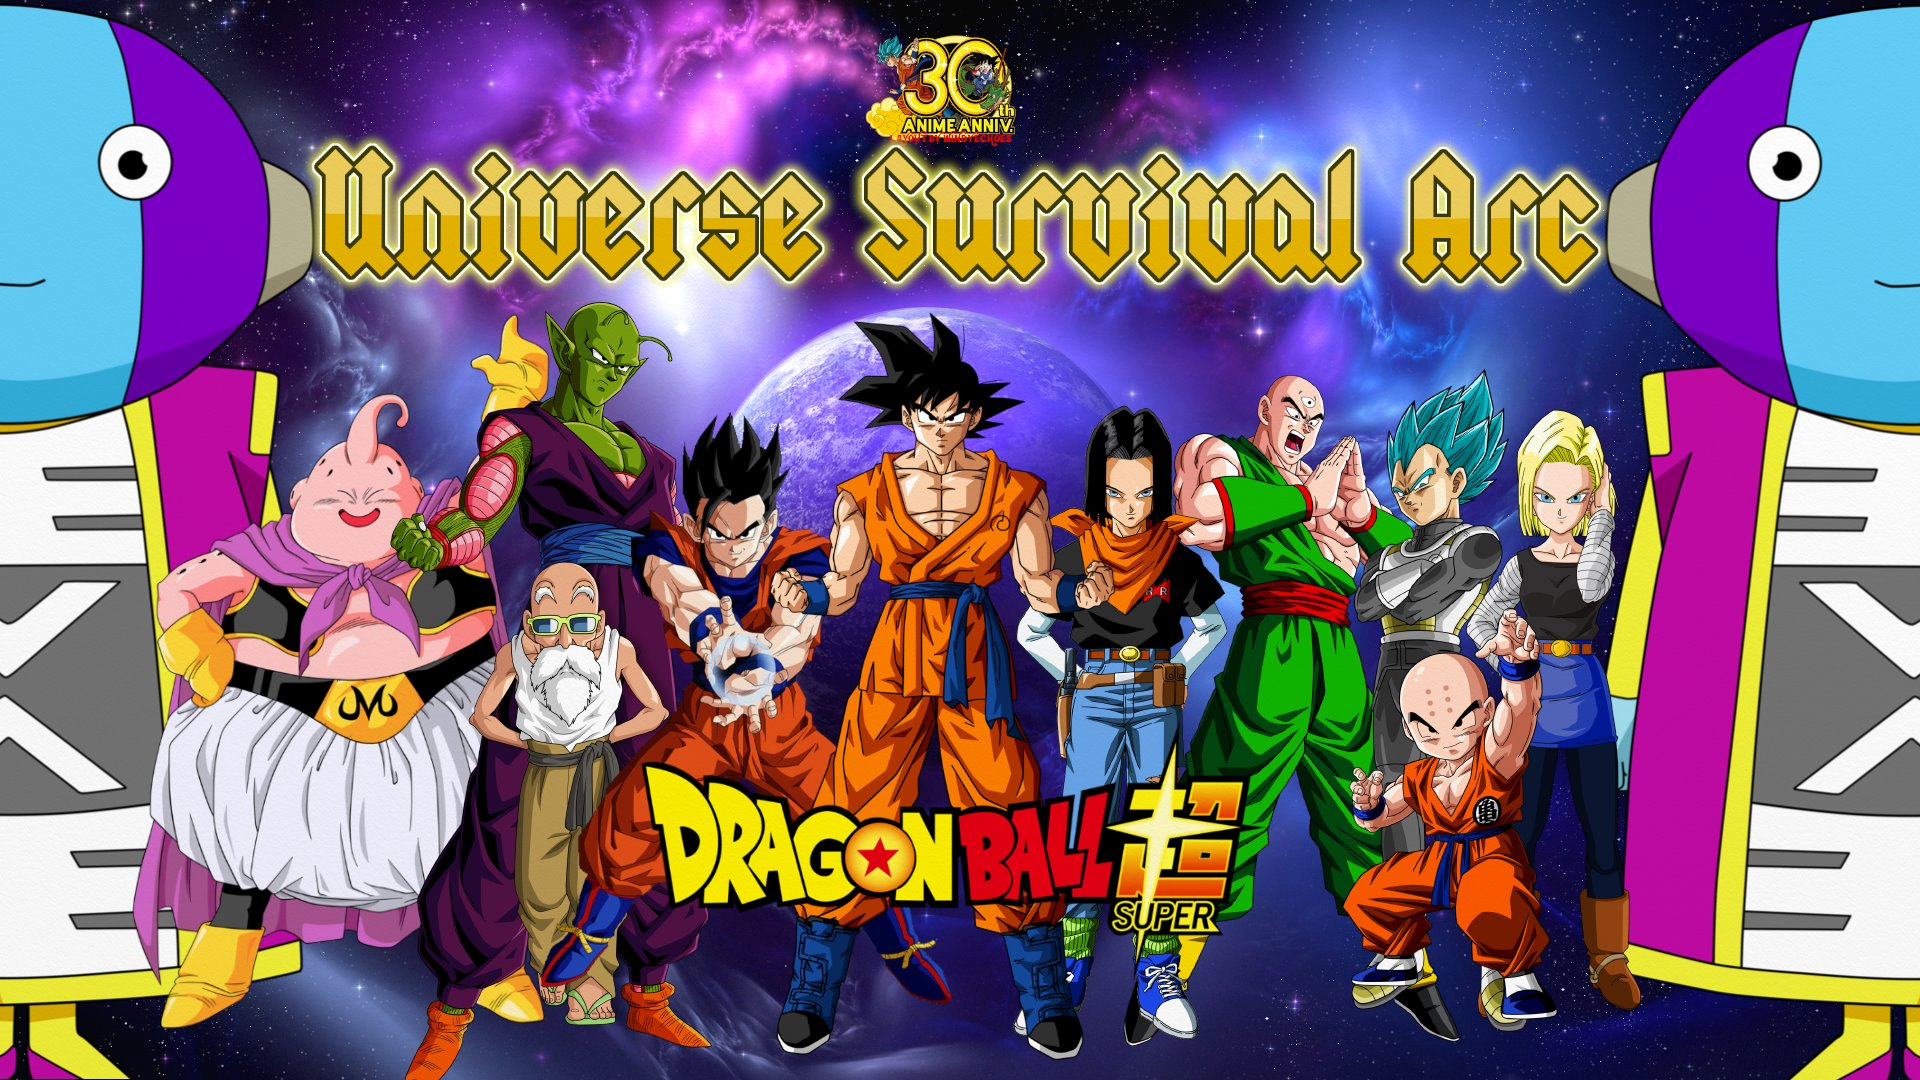 Universe Survival Arc Full HD Wallpaper And Background Image